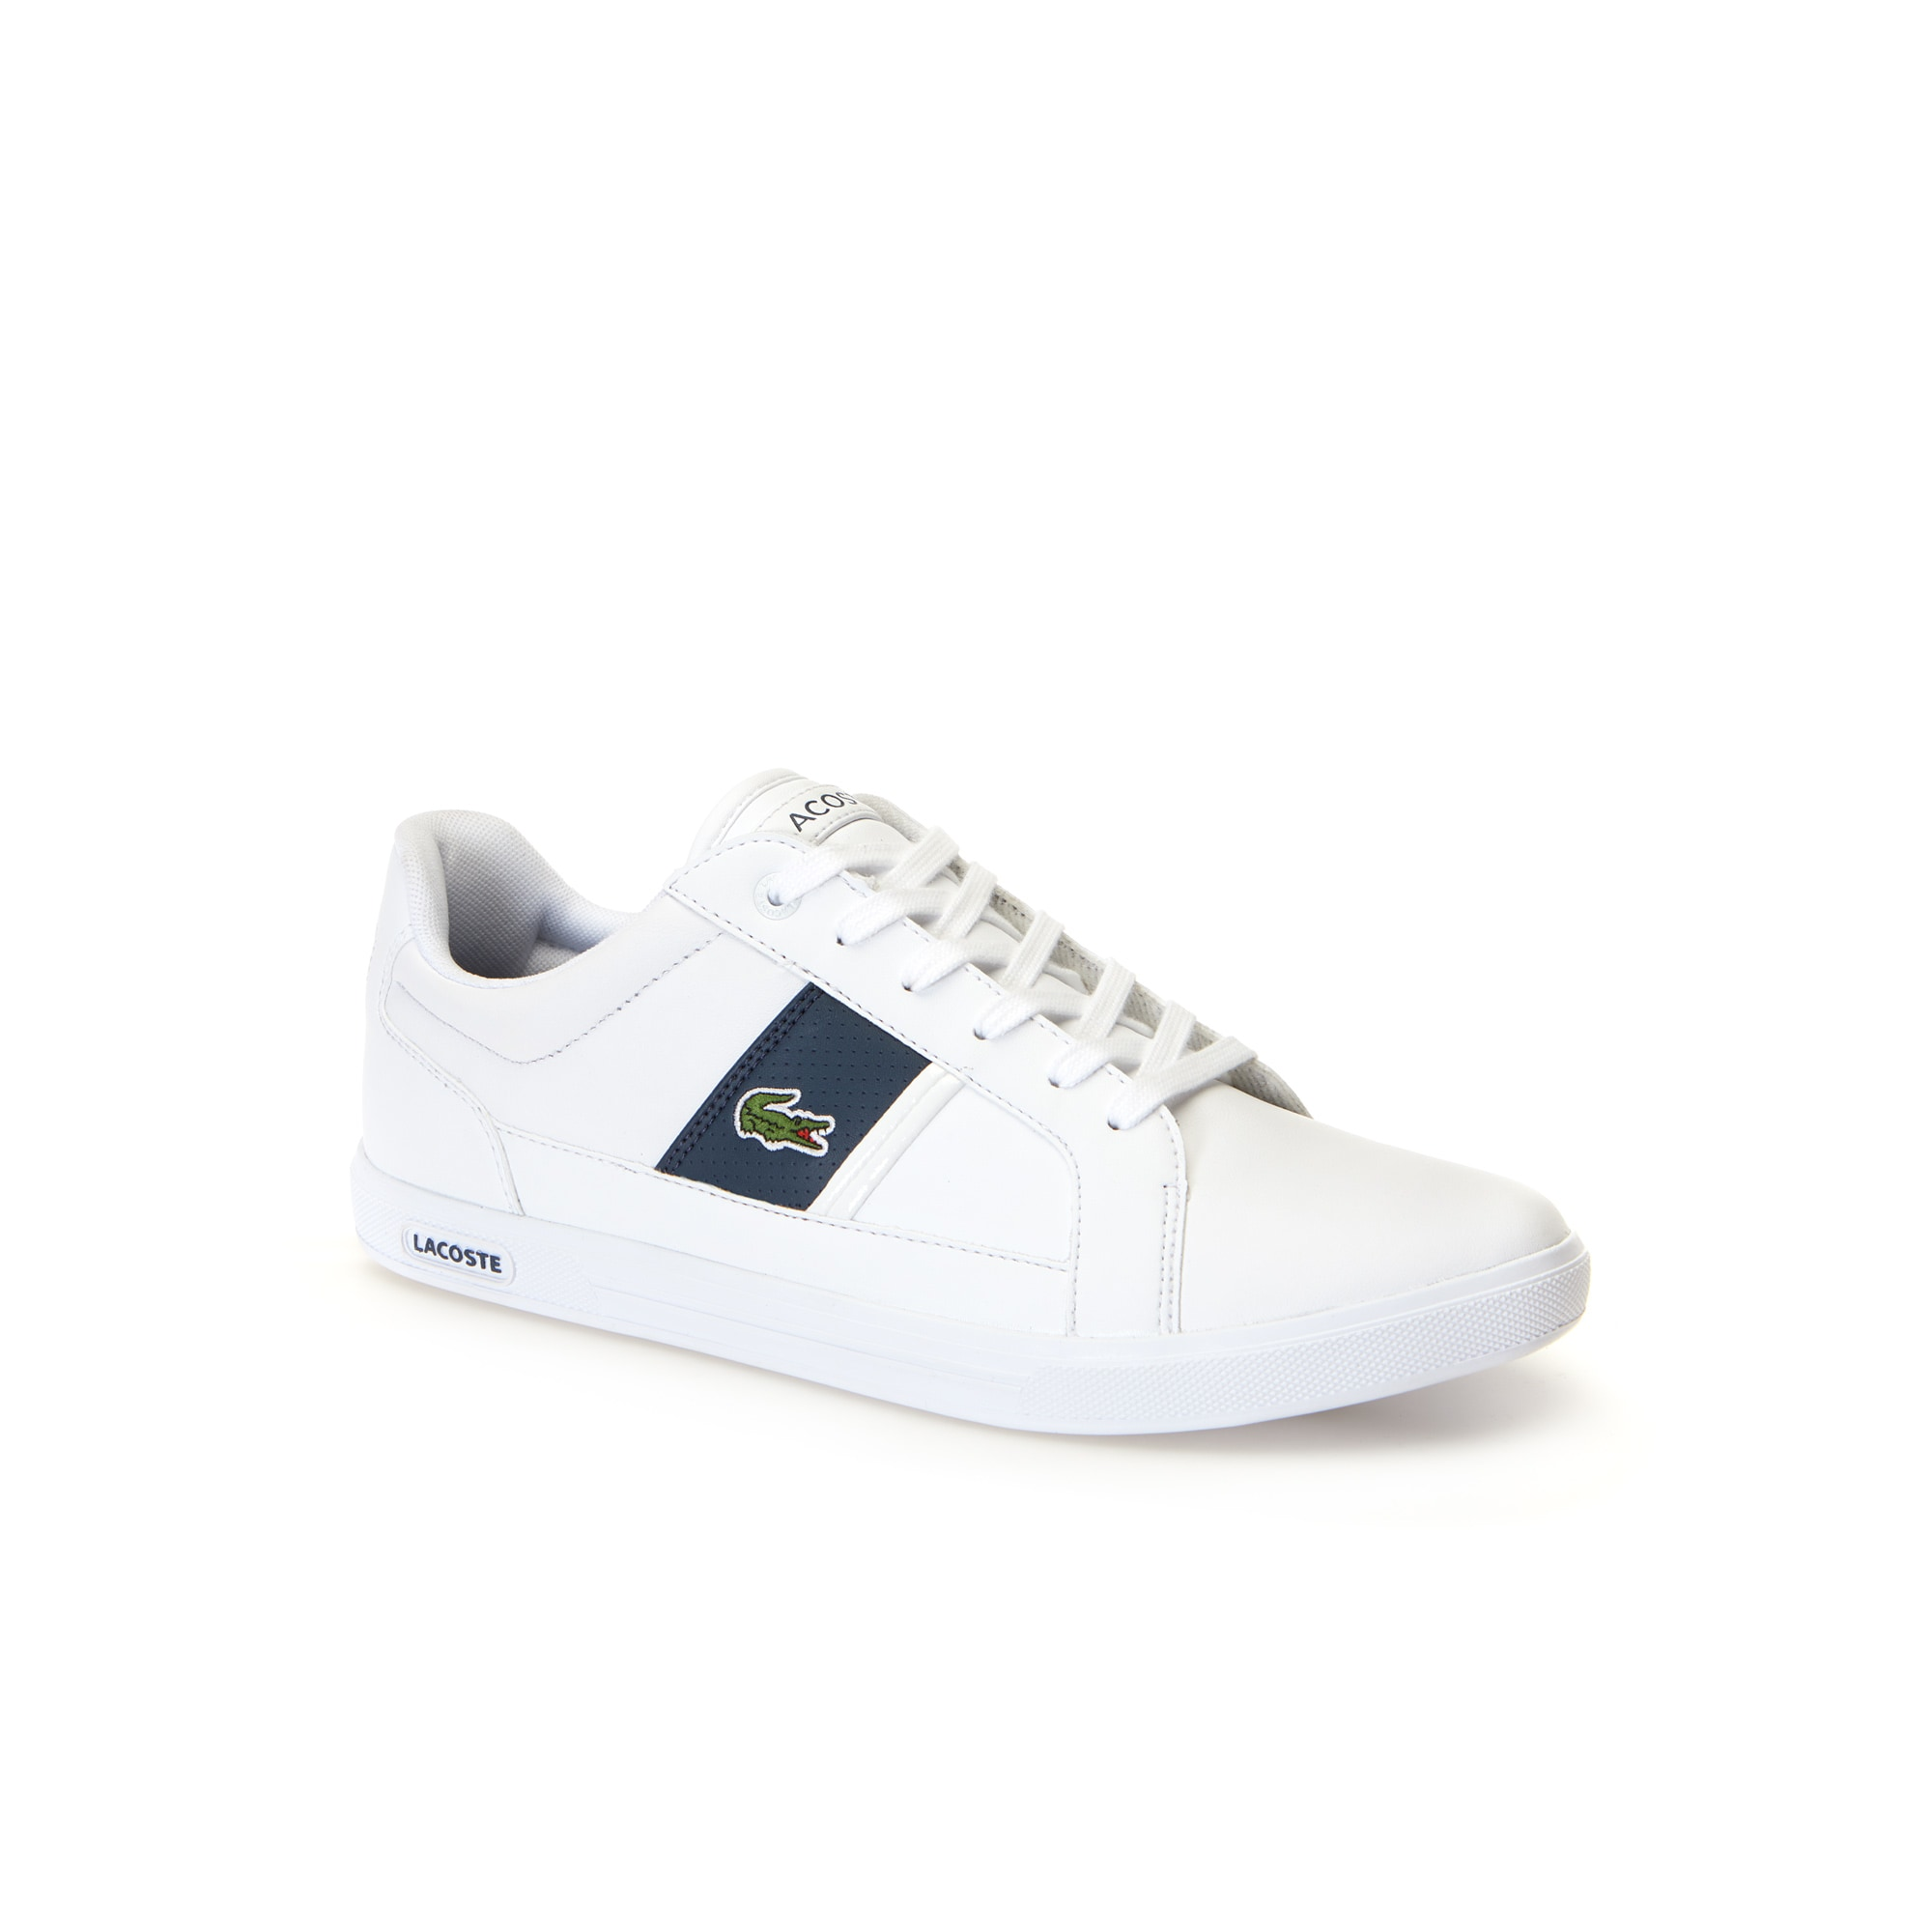 Men's Europa low-rise trainers in leather with contrast panels